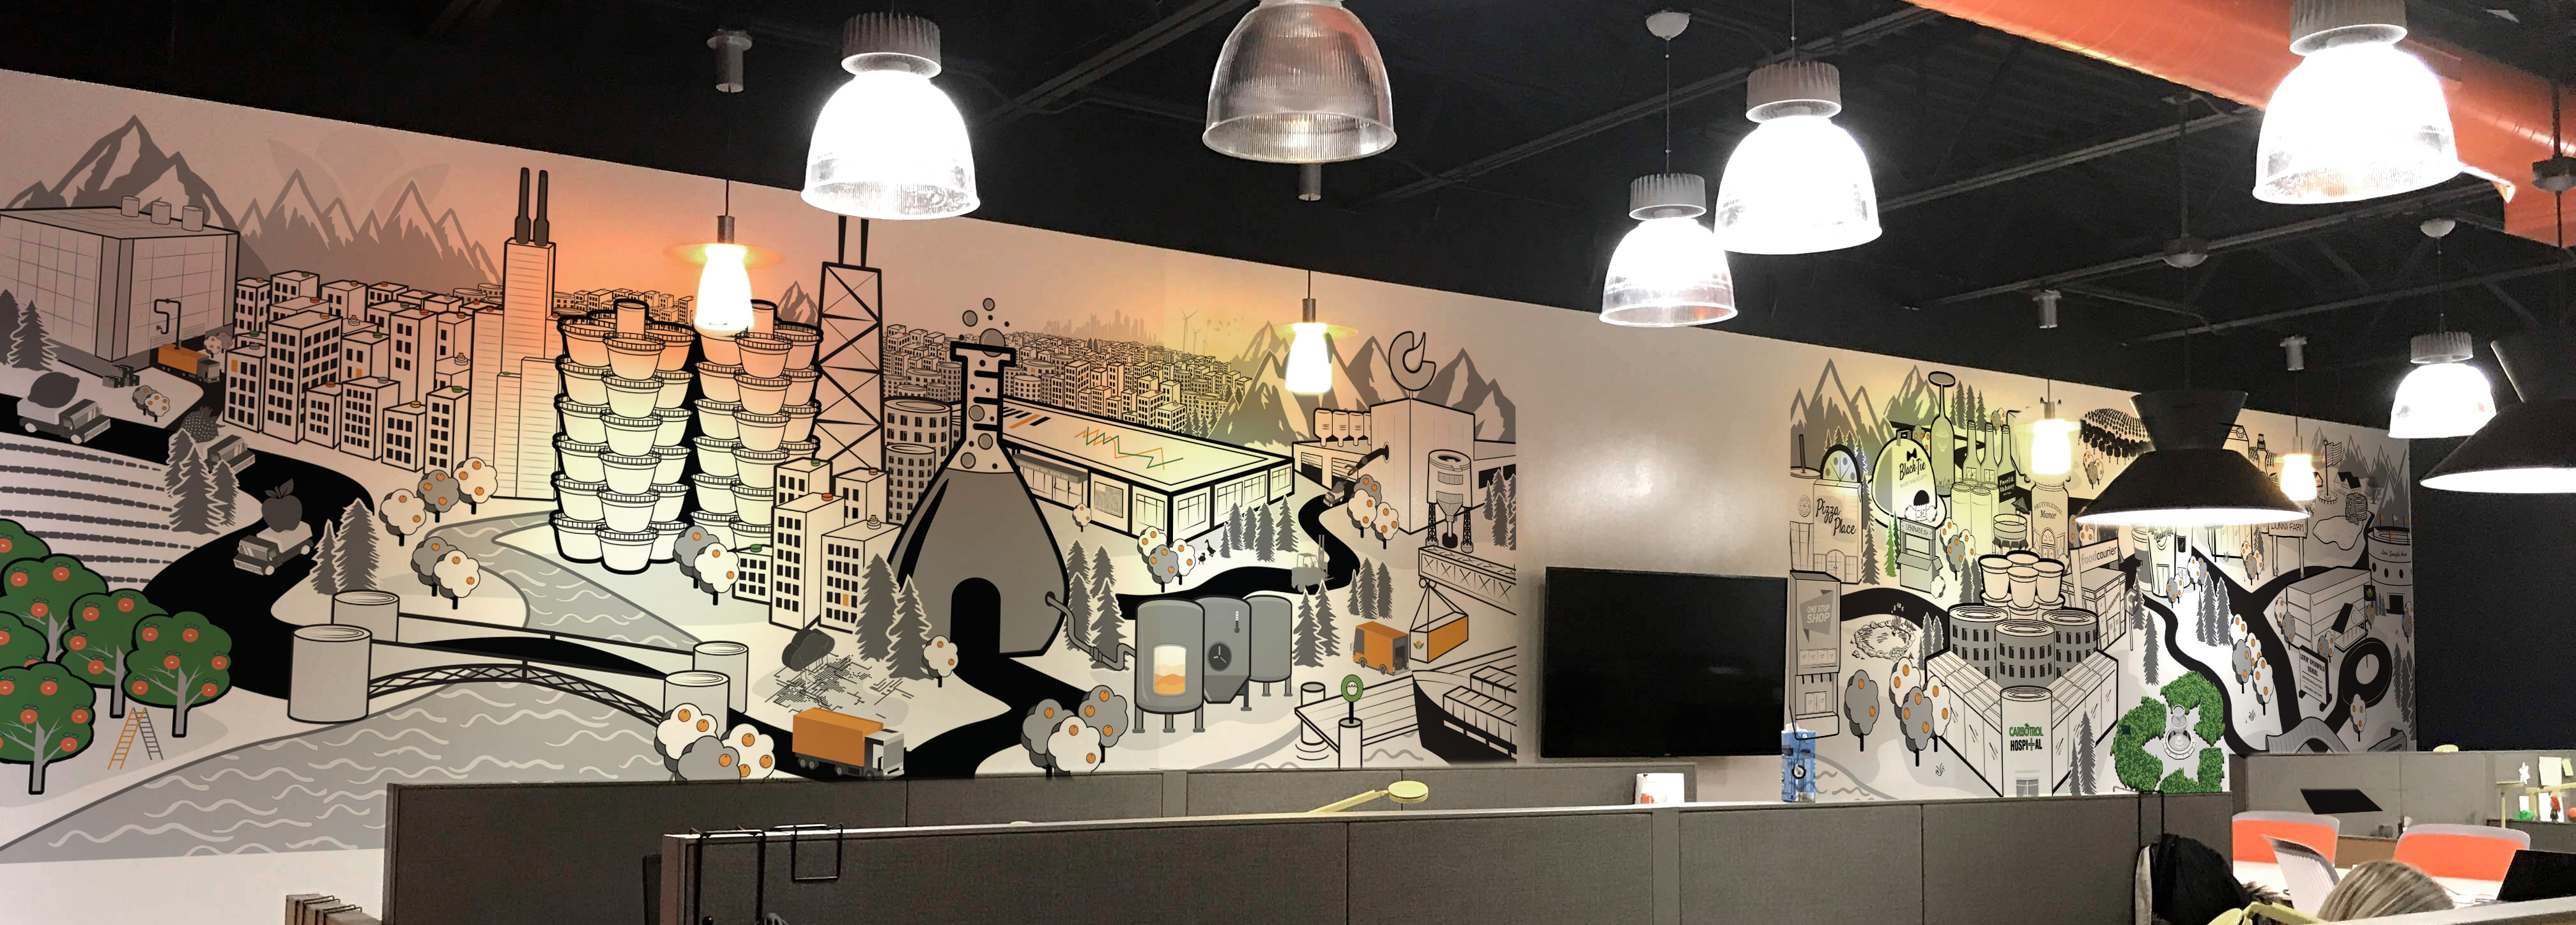 The Advenutre Agency | Wall Mural Design